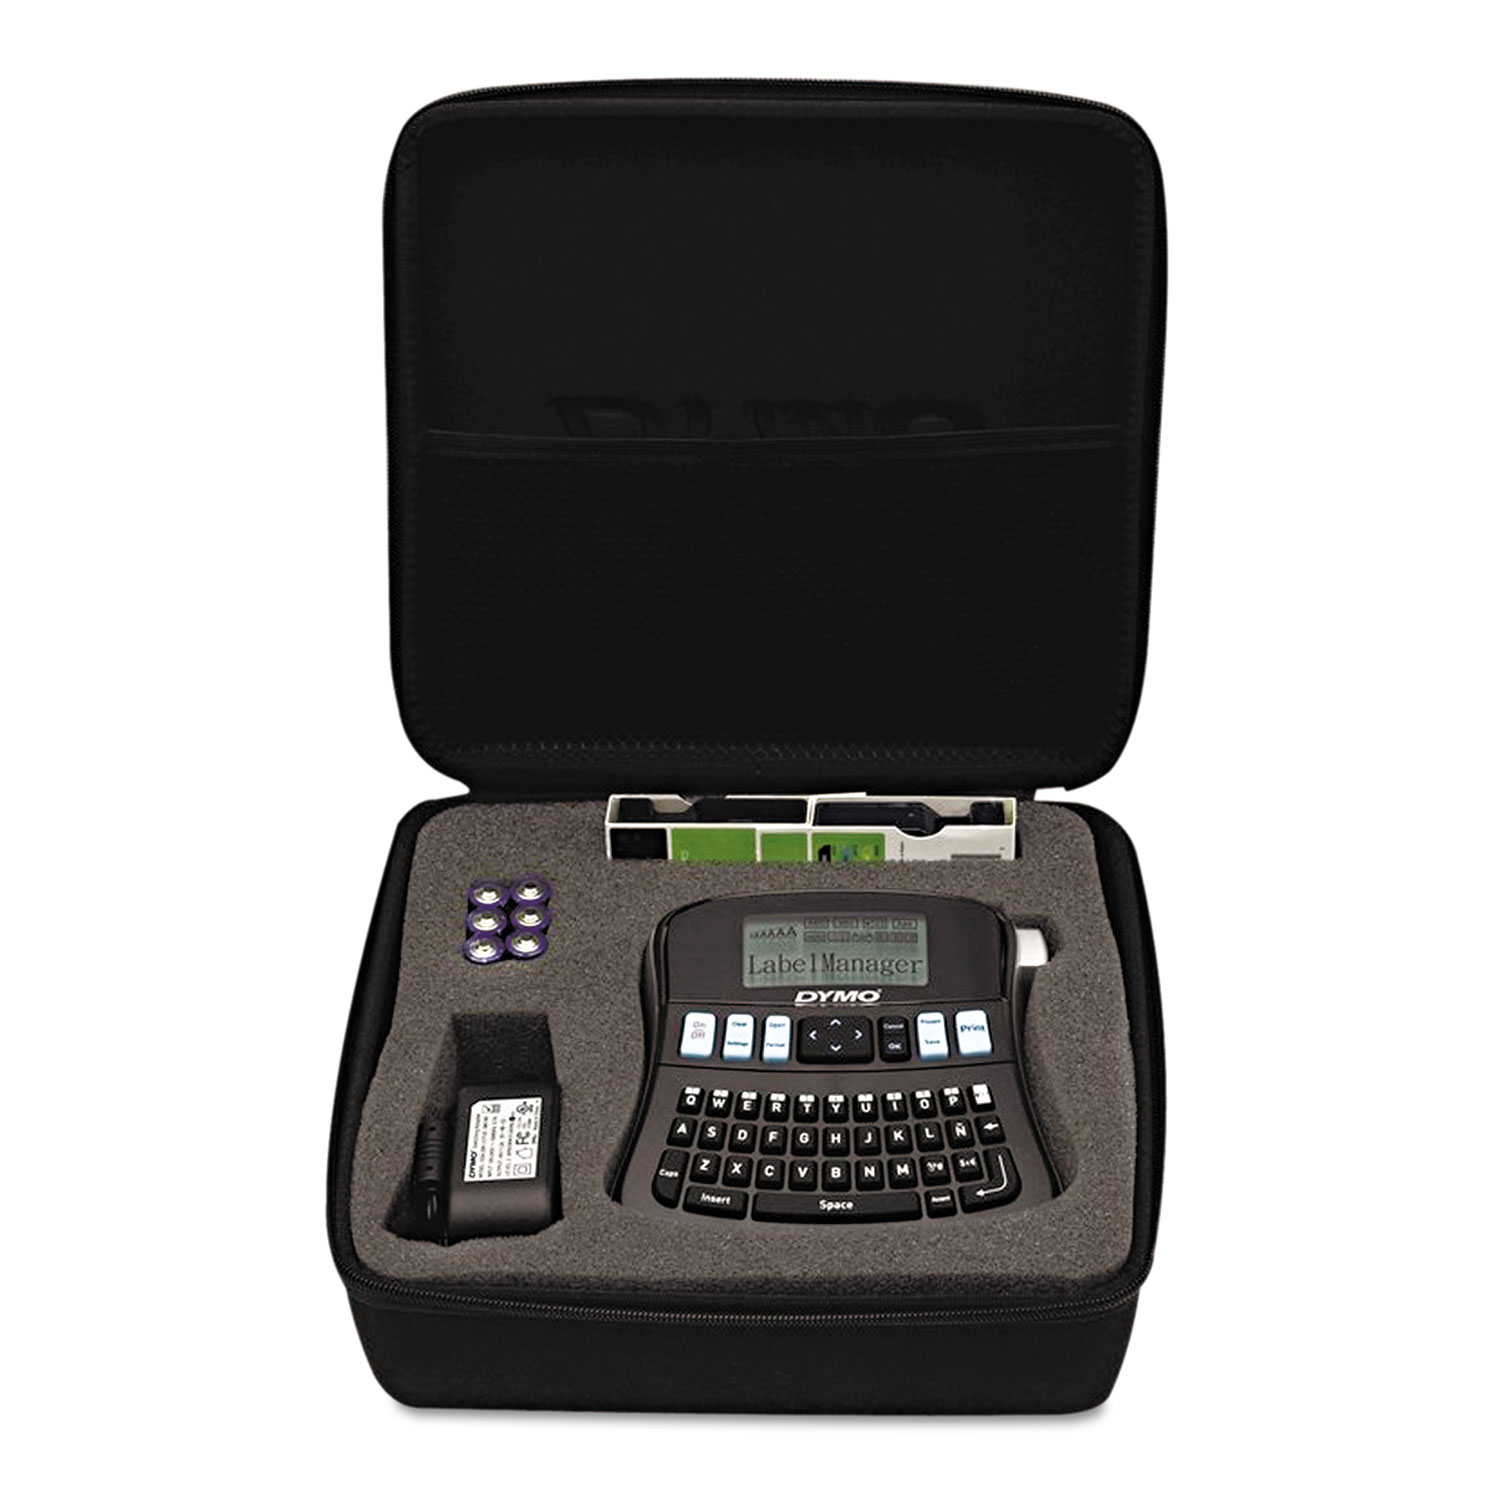 LabelManager 210D Kit, 2 Lines, 6 1/10w x 6 1/2d x 2 1/2h